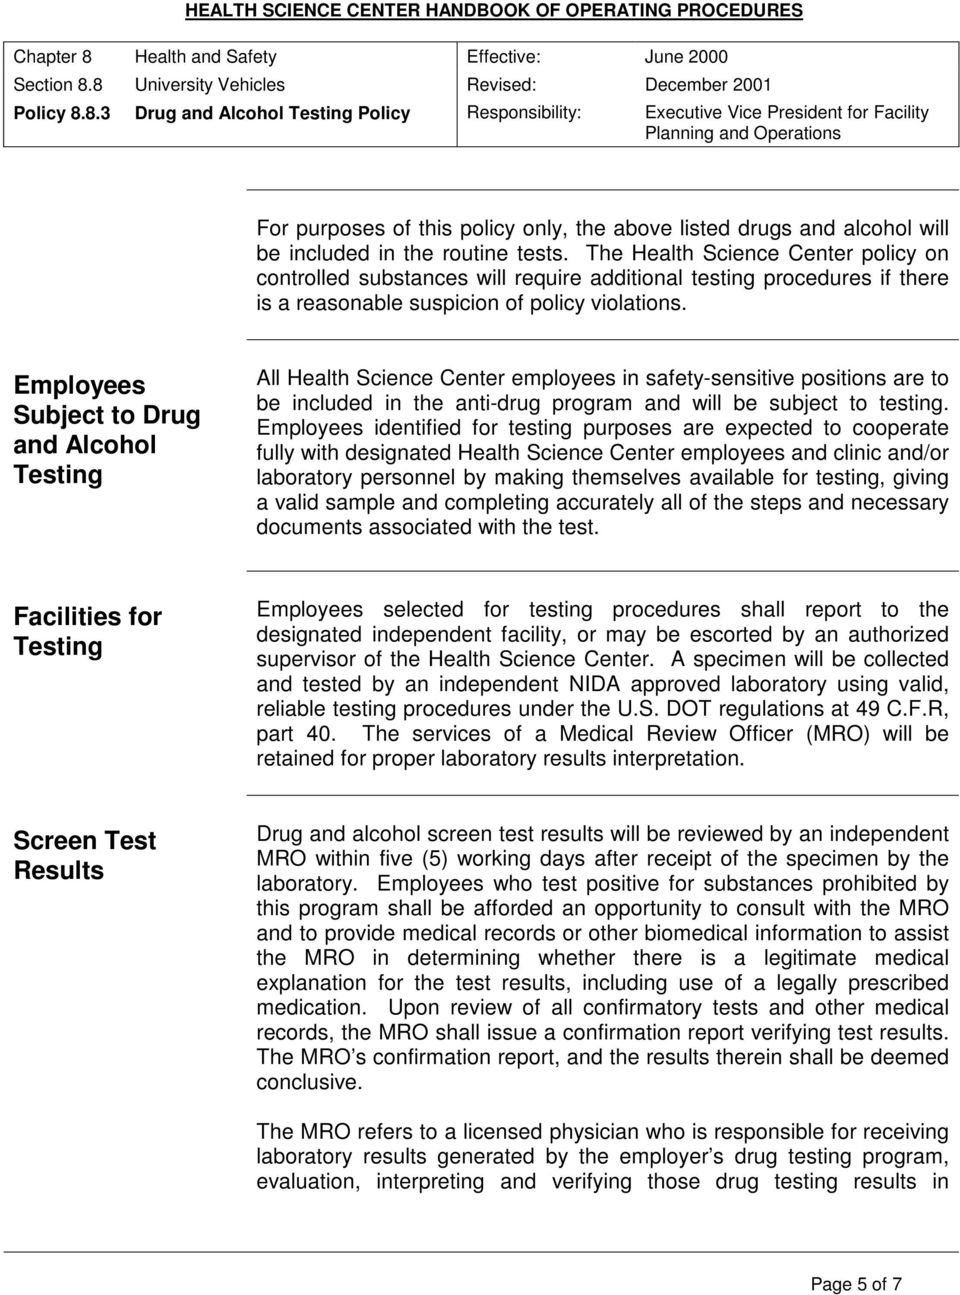 Employees Subject to Drug and Alcohol Testing All Health Science Center employees in safety-sensitive positions are to be included in the anti-drug program and will be subject to testing.